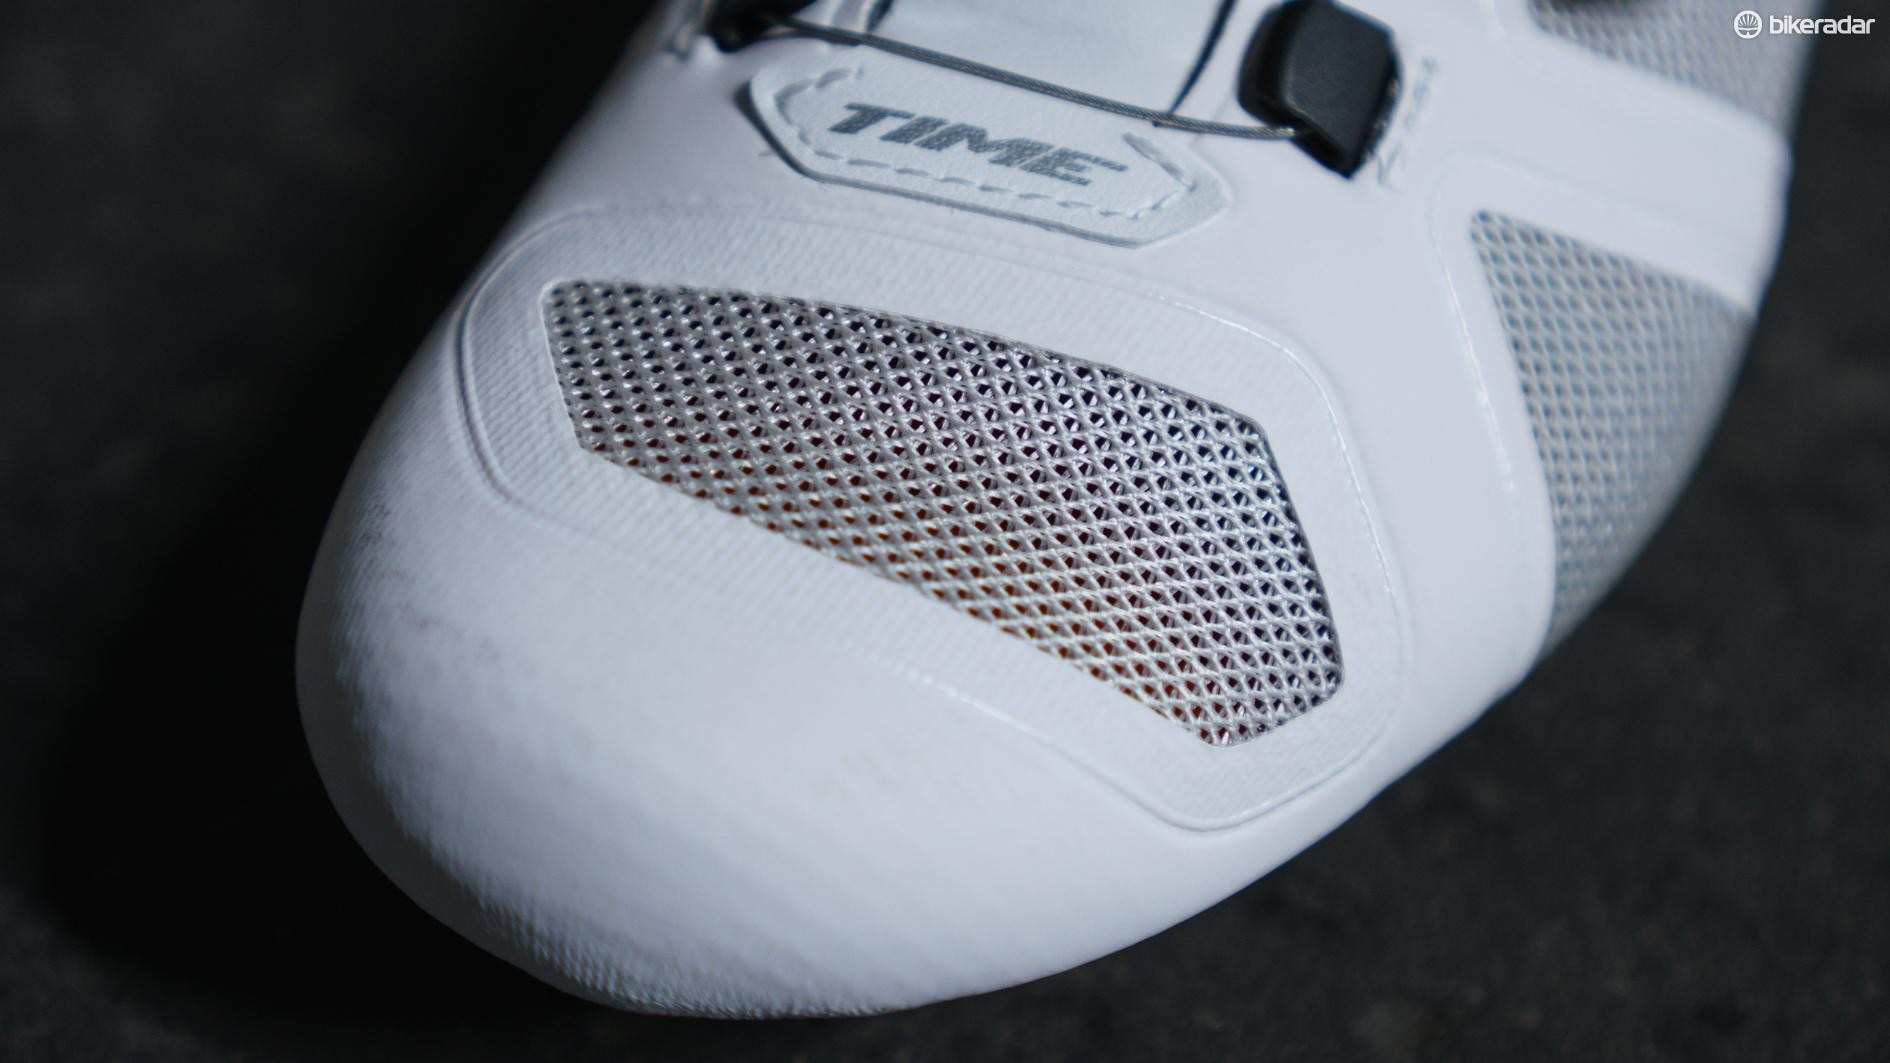 The mesh used on the upper feels hardier than what is typically used on cycling shoes